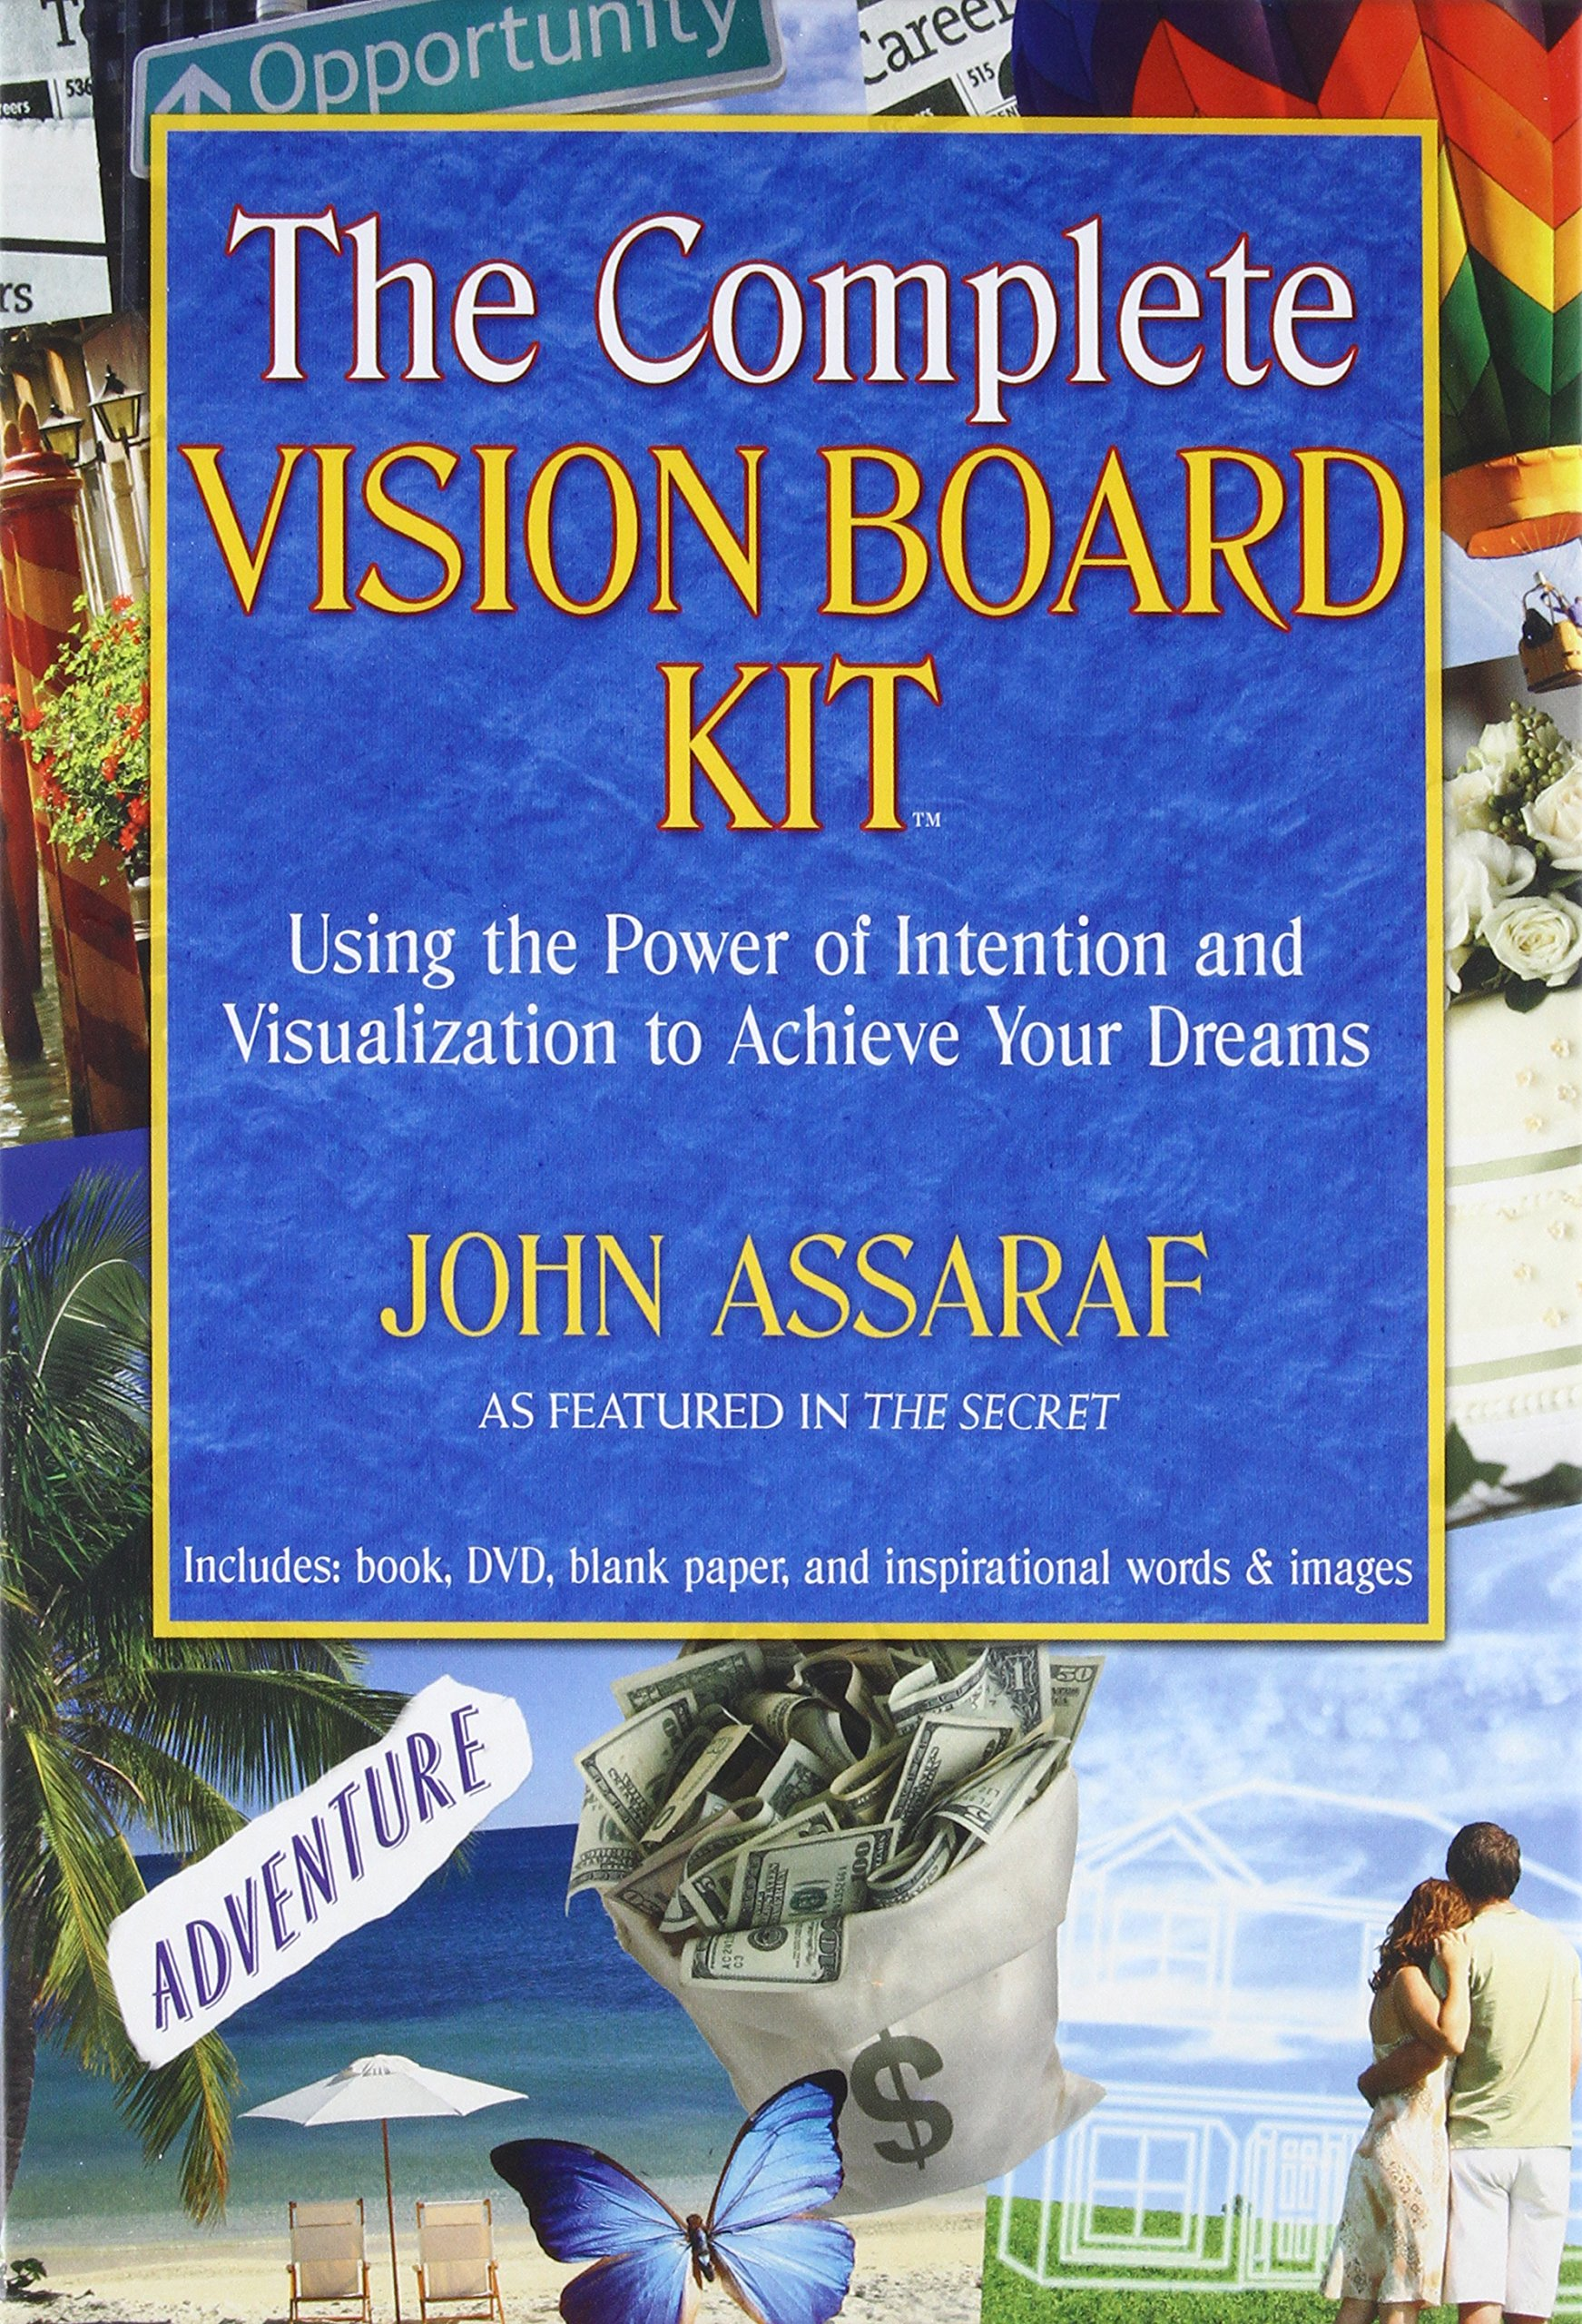 The Complete Vision Board Kit Using Power Of Intention And Circuit Boards Find New Life As Notebooks Soul Magazine Visualization To Achieve Your Dreams John Assaraf 9781582701912 Books